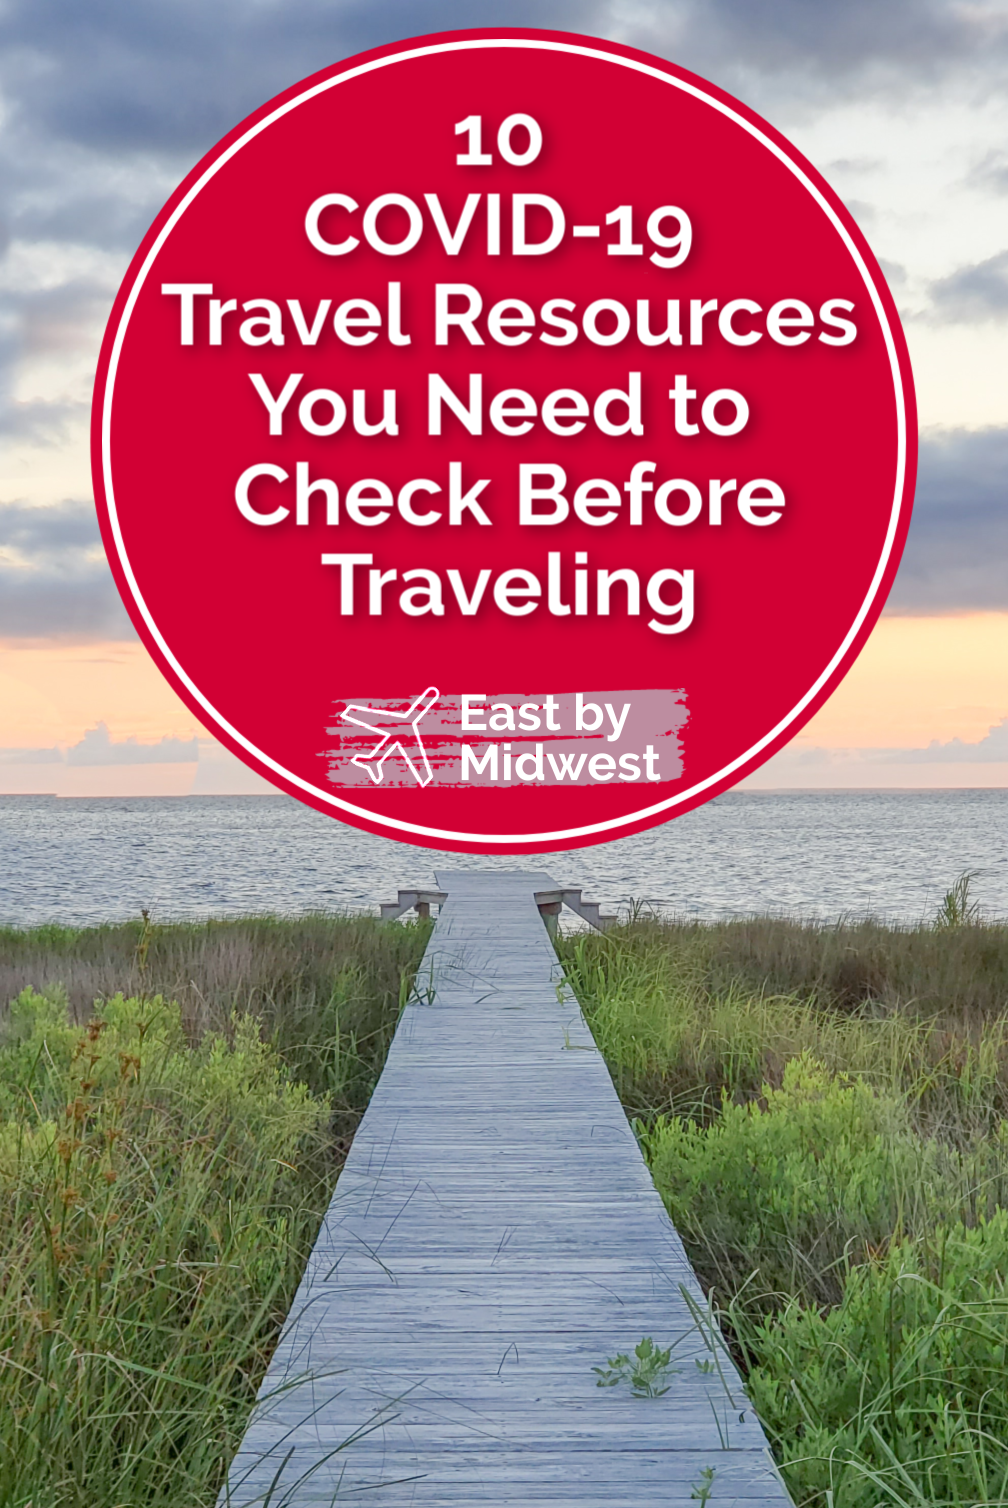 10 COVID-19 Travel Resources You Need to Check Before Traveling